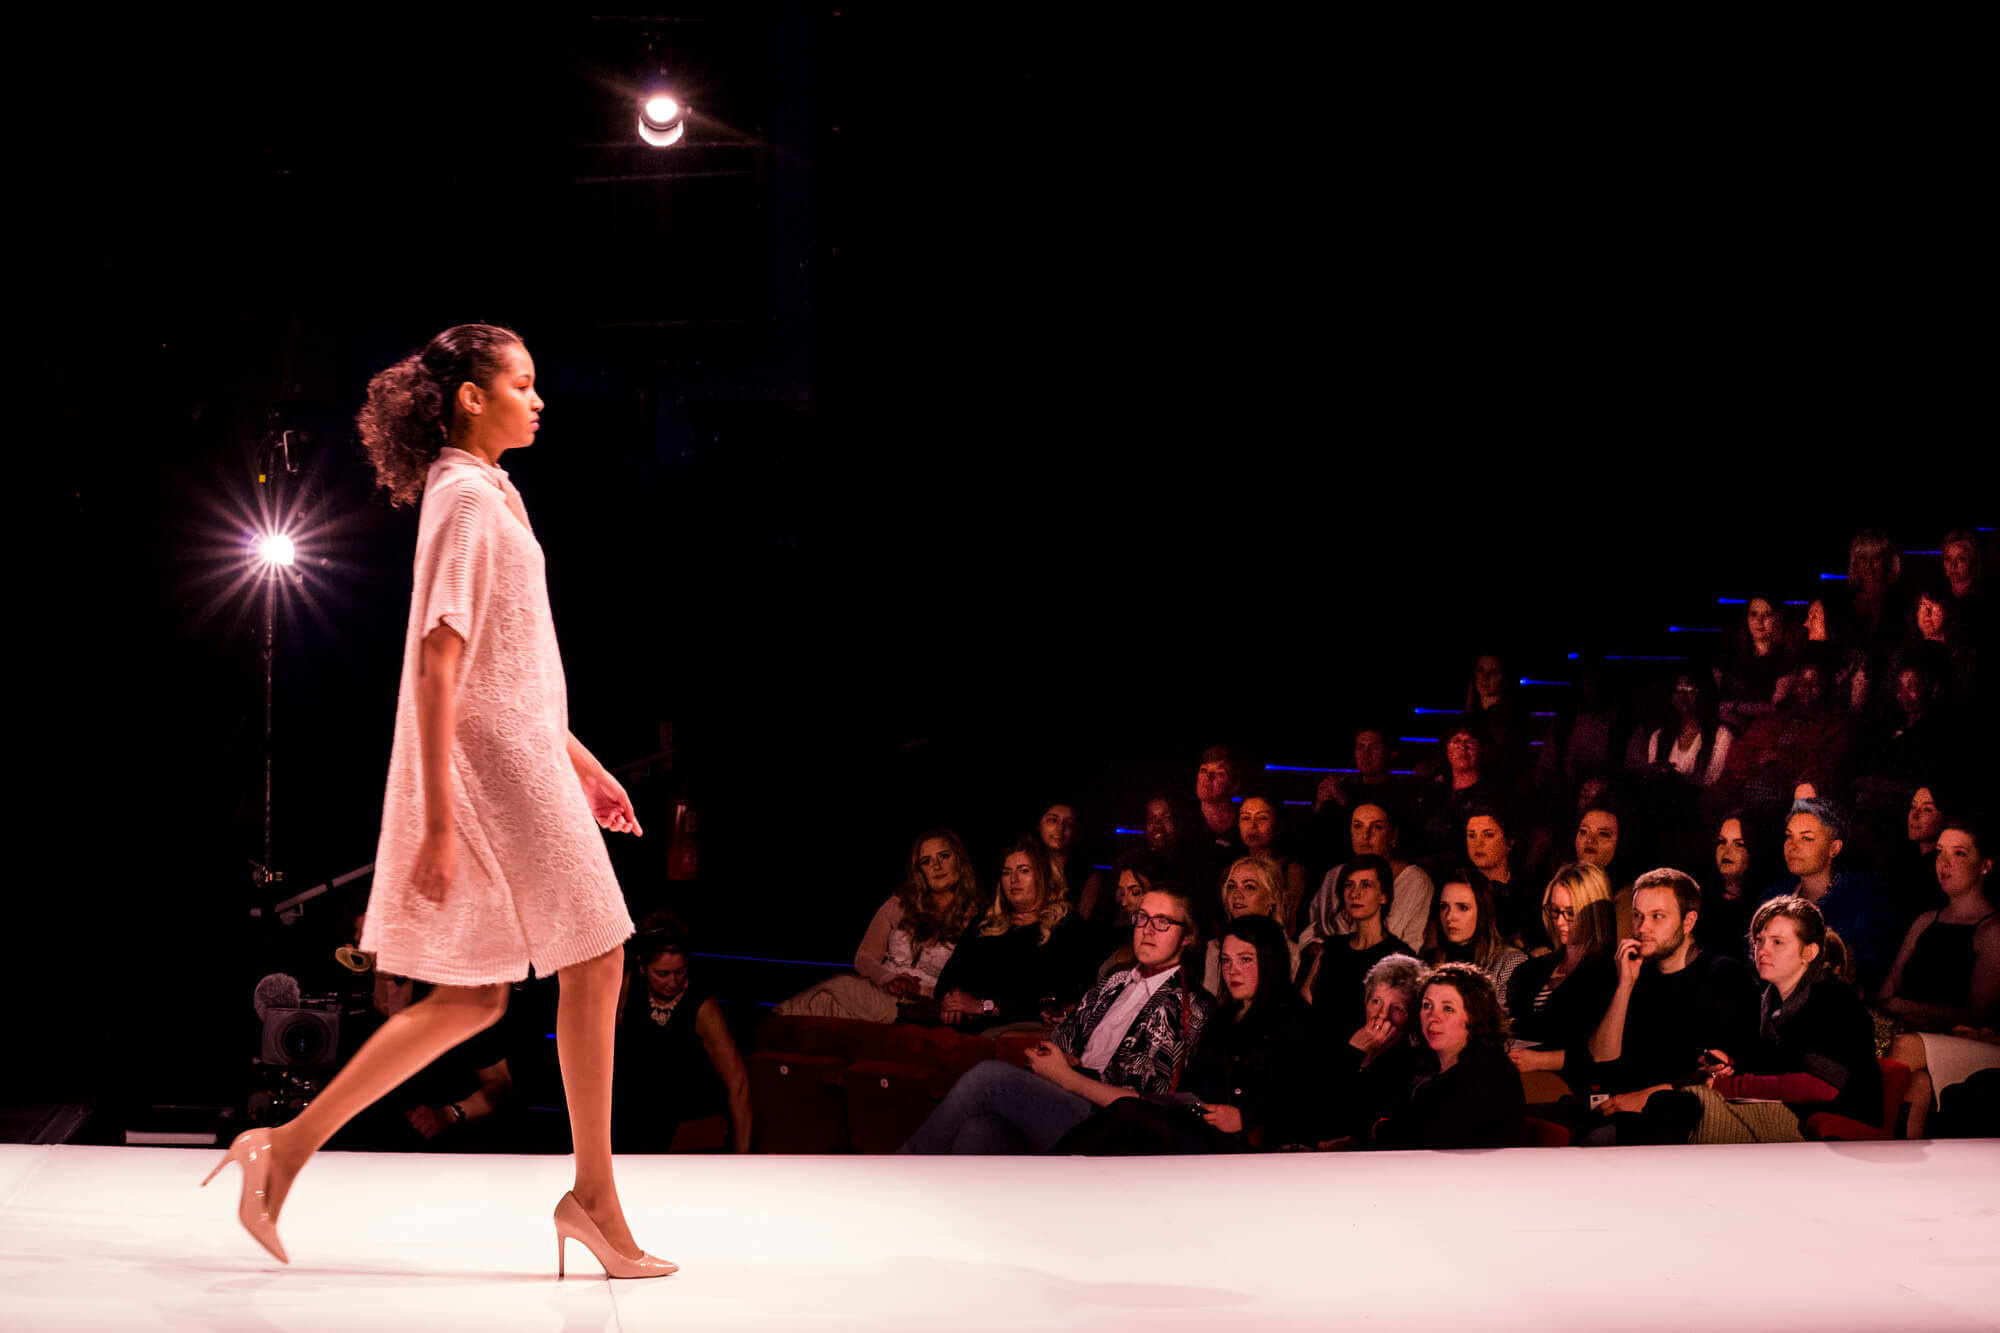 A model walking on a runway during a fashion show at Derby theatre